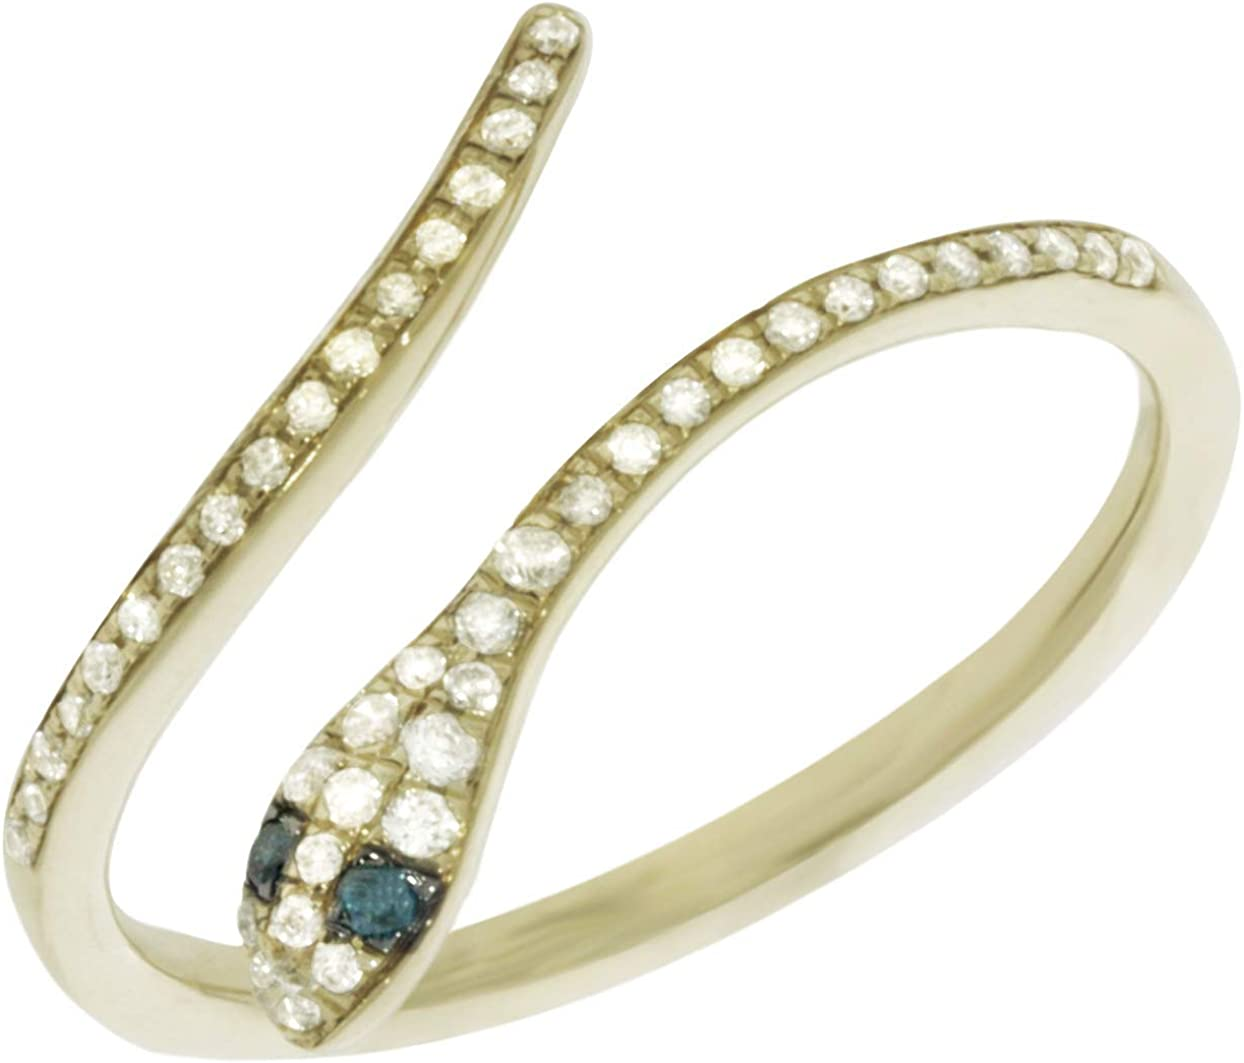 925 Sterling Silver Star Shape Ring Goldenstar 0.17Ct.White and Blue Diamond Ring